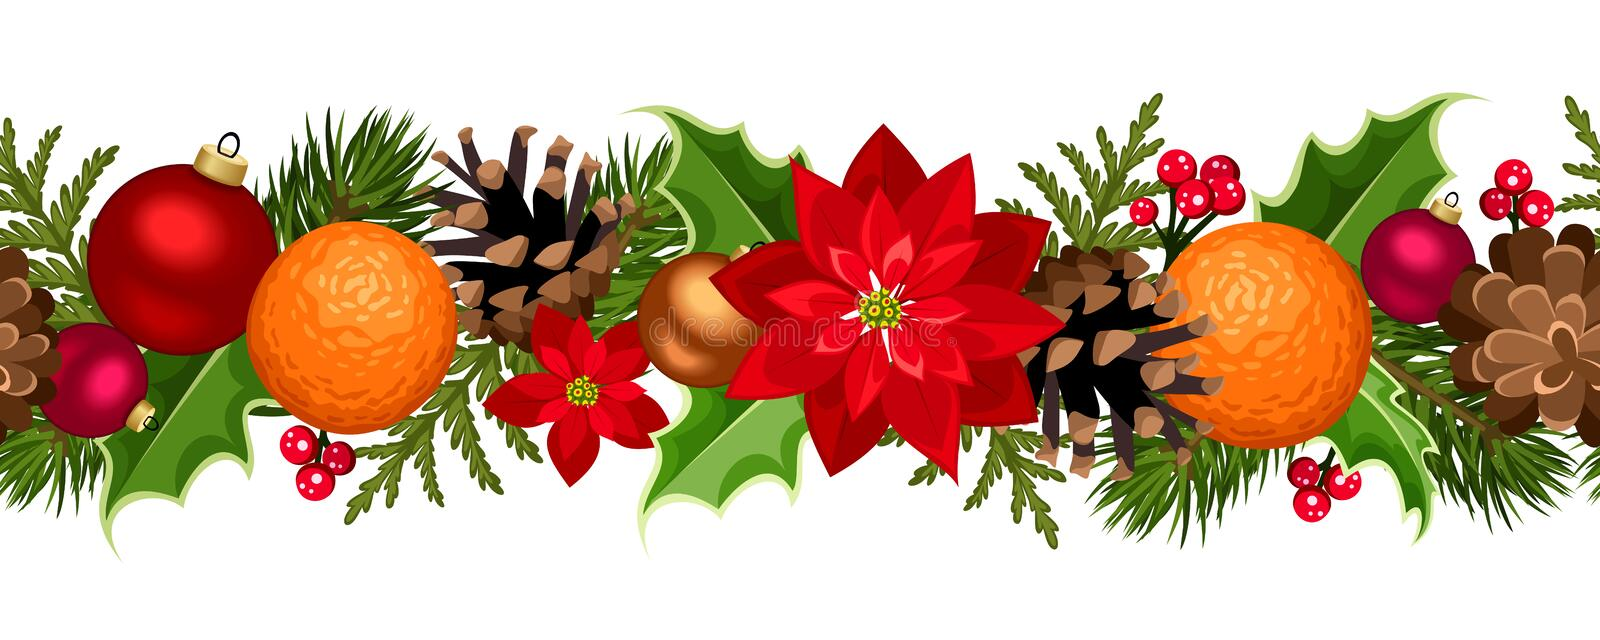 Christmas seamless garland with balls, holly, poinsettia, cones and oranges. Vector illustration. stock illustration